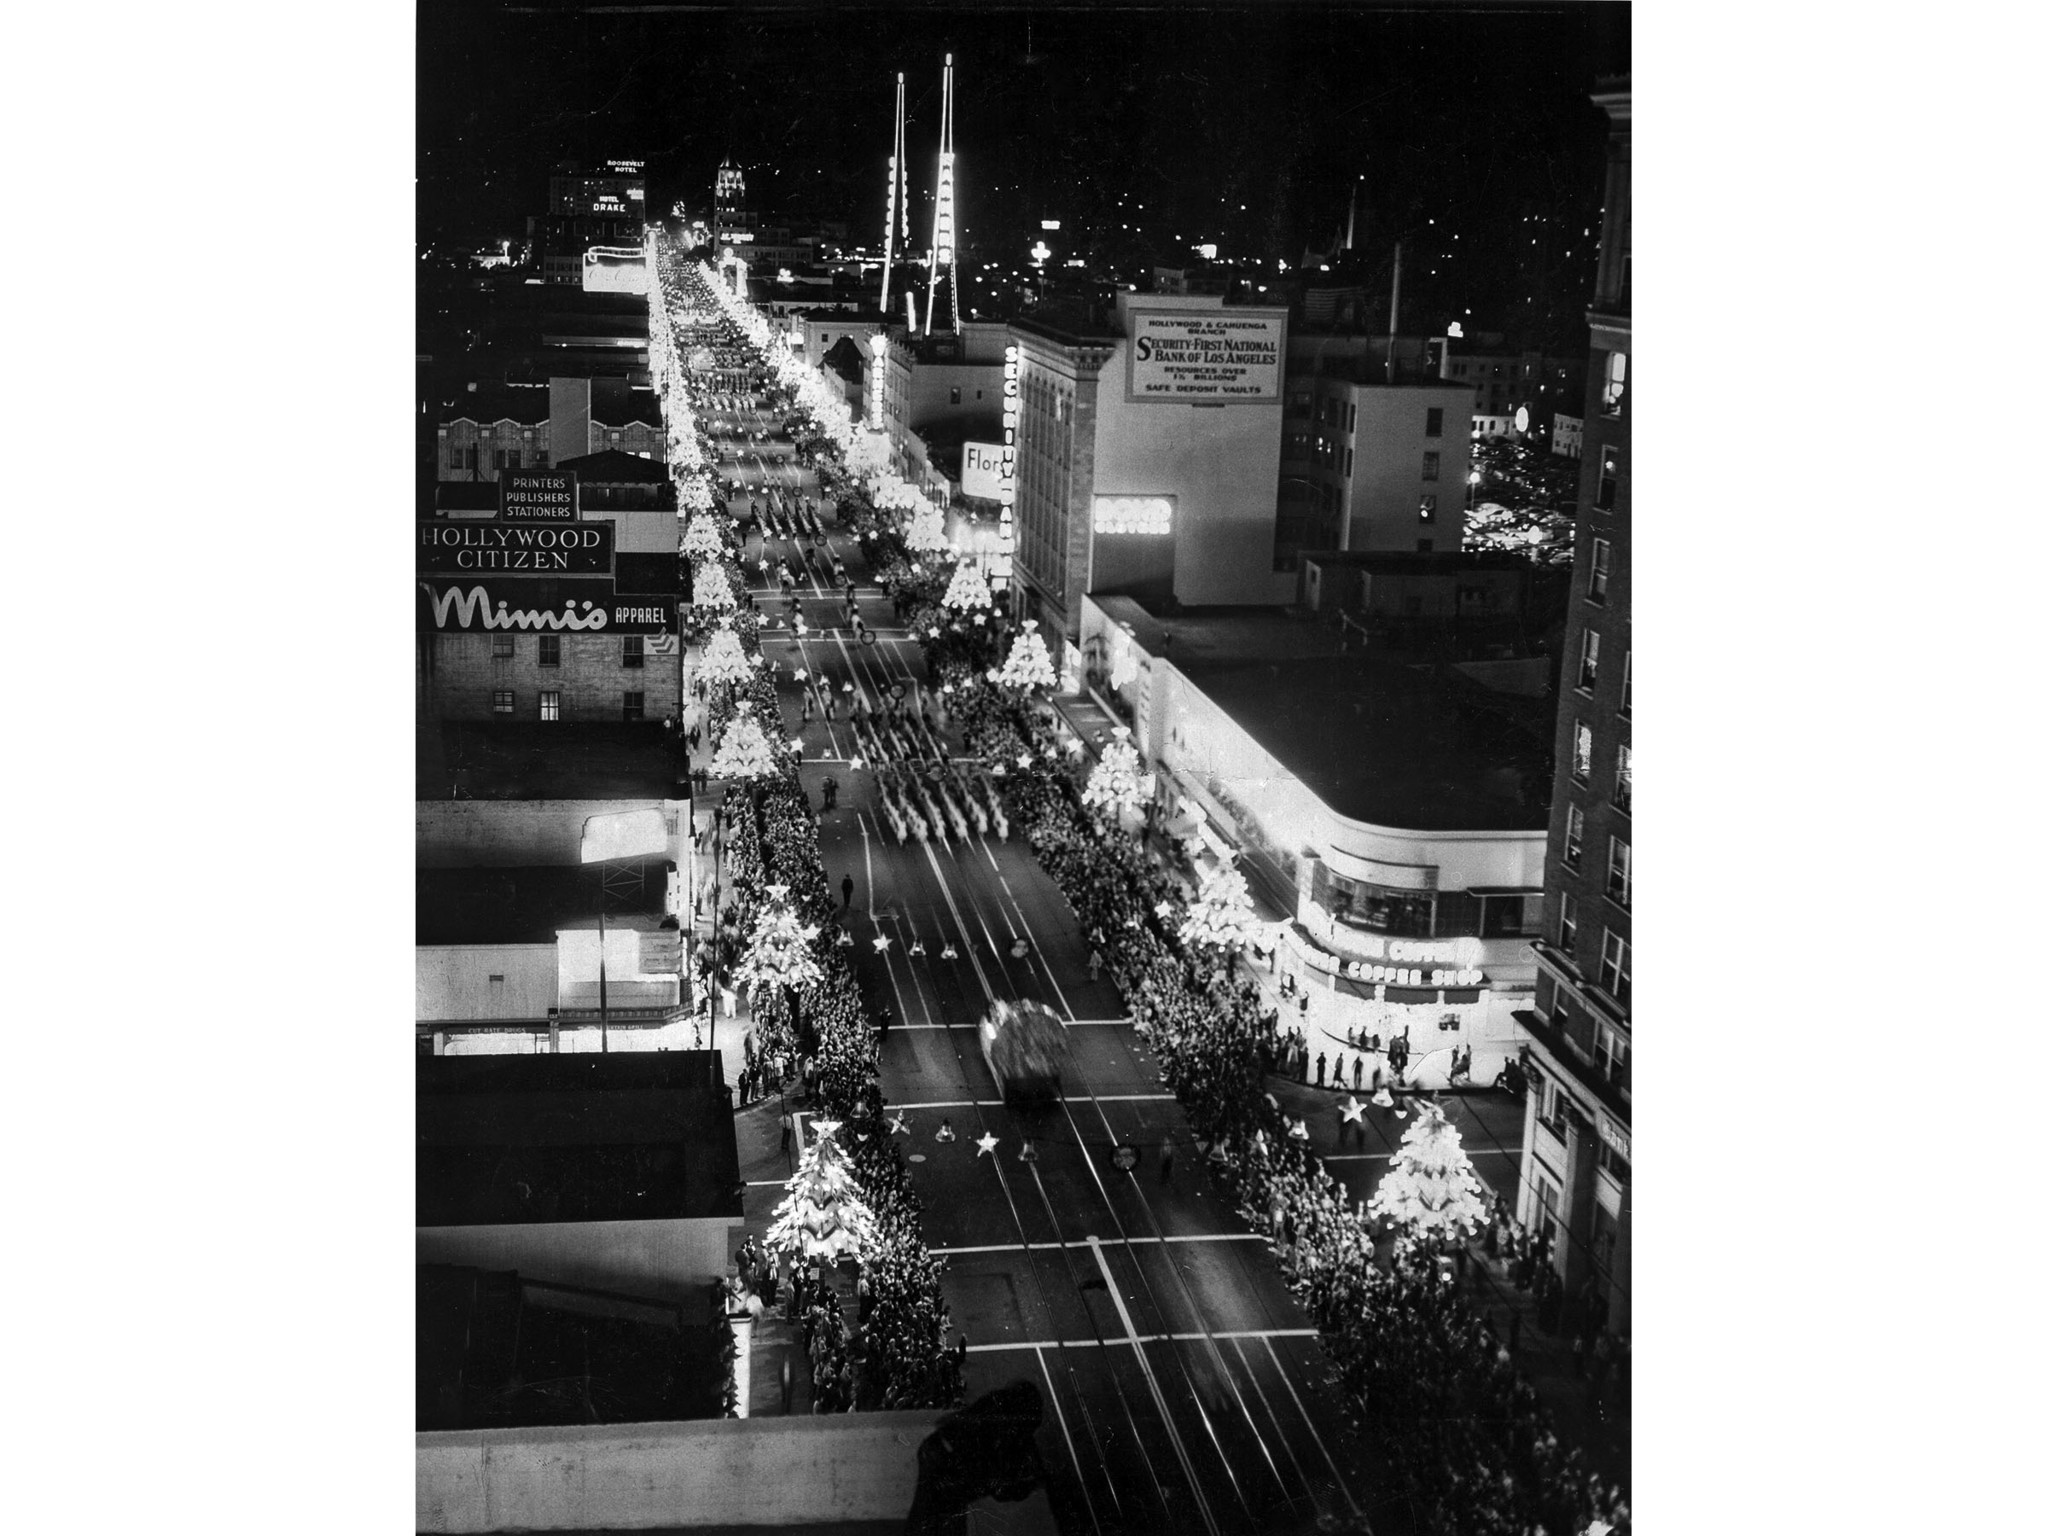 Nov. 22, 1950: The 19th annual Santa Claus Lane Parade preceeds down Hollywood Blvd. on Thanksgiving